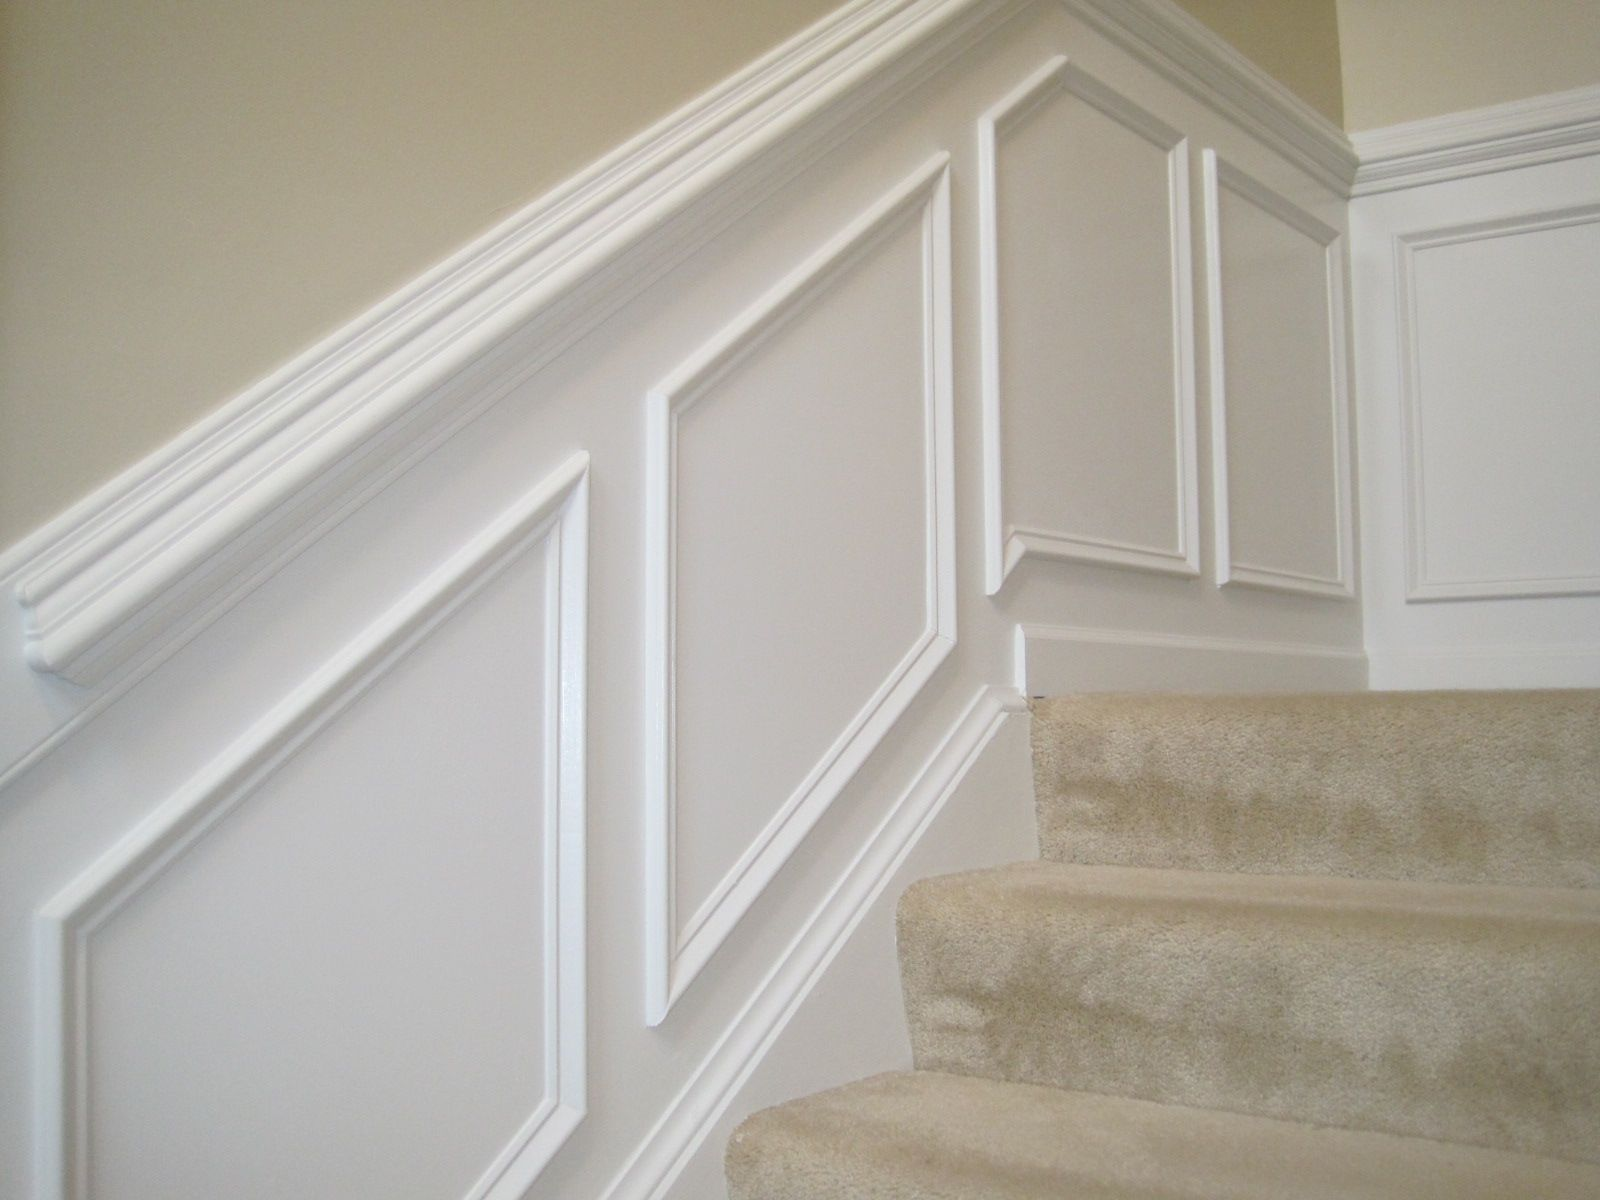 chair rail vs wainscoting